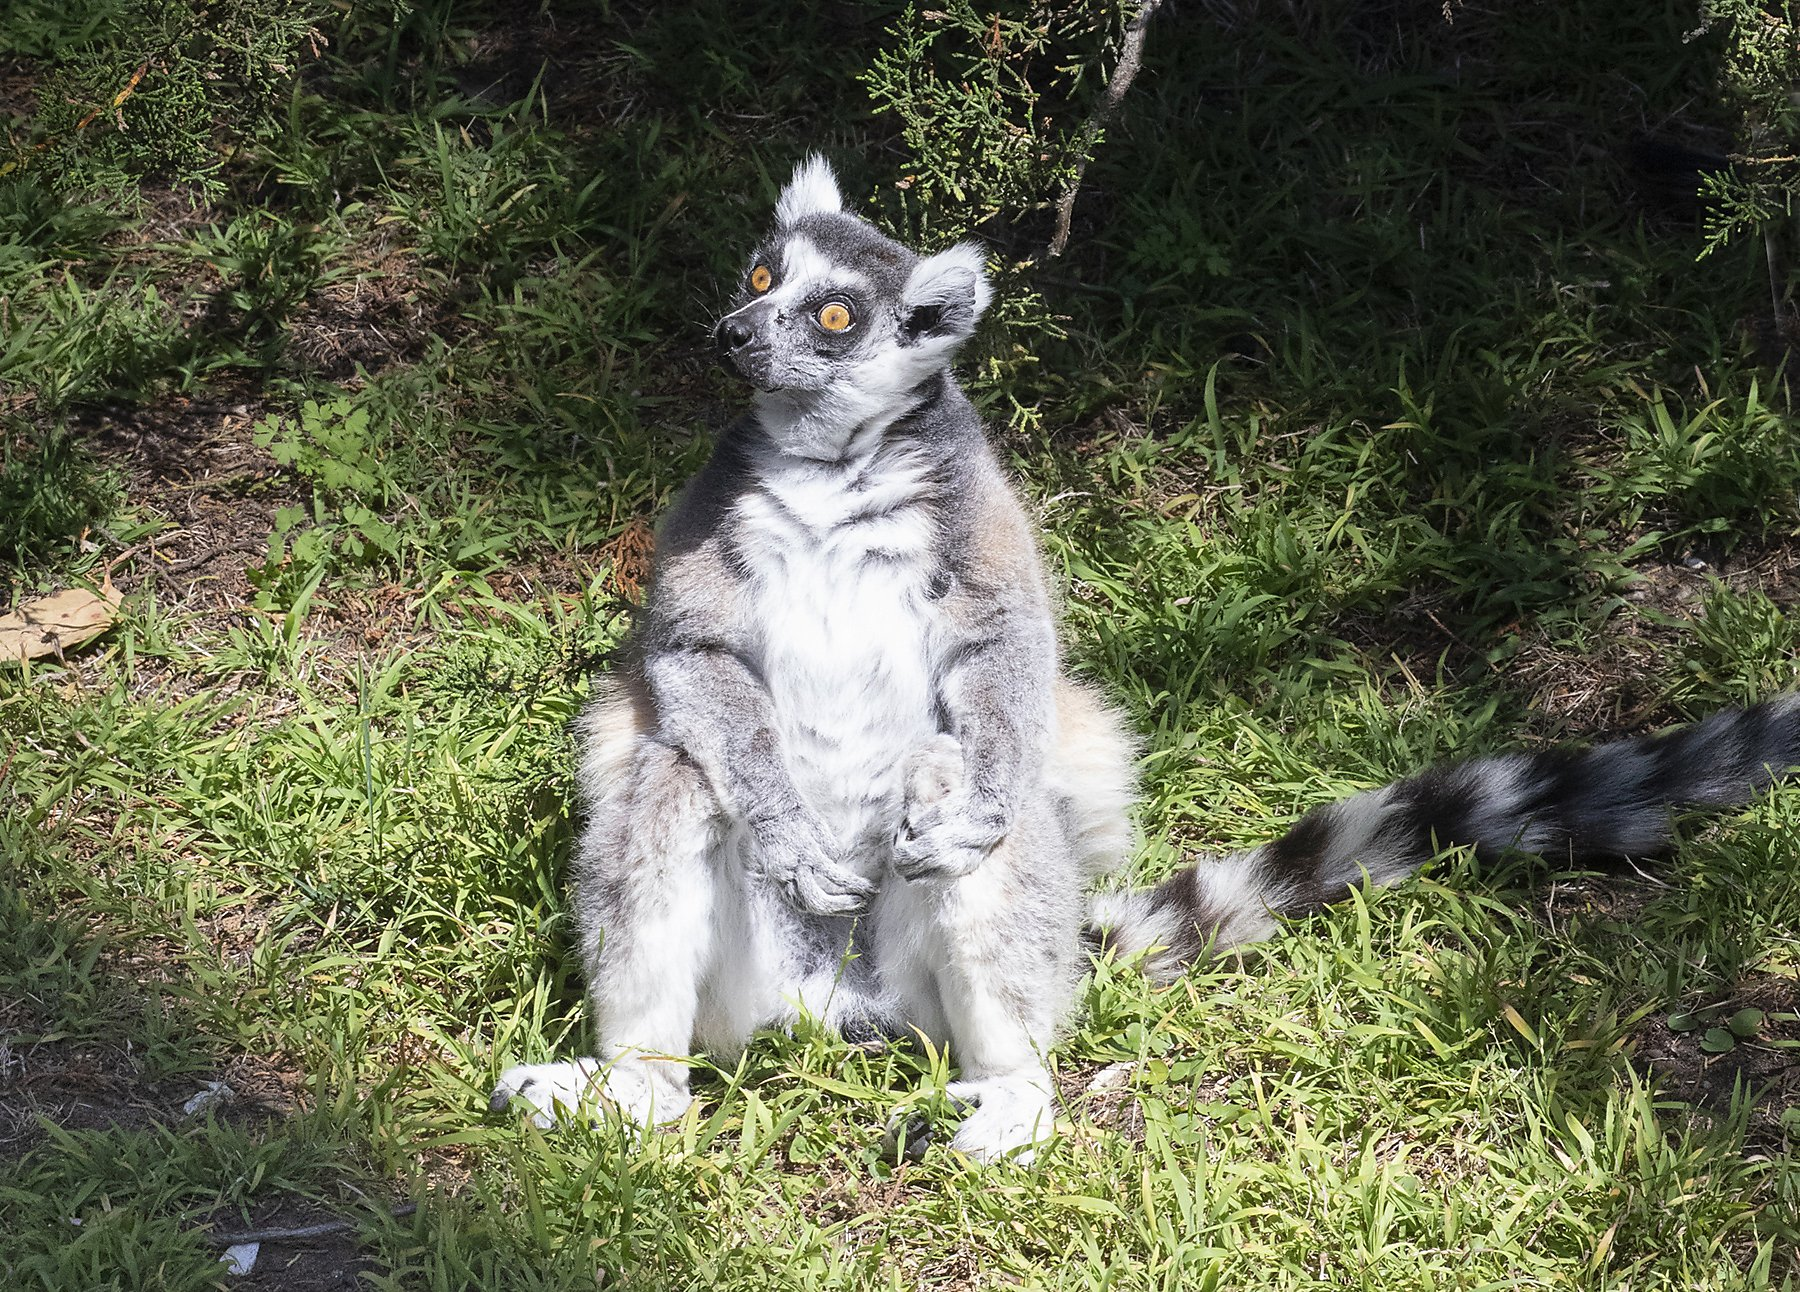 Lemur on the loose: Police investigate possible burglary of 'highly endangered' animal at S.F. Zoo